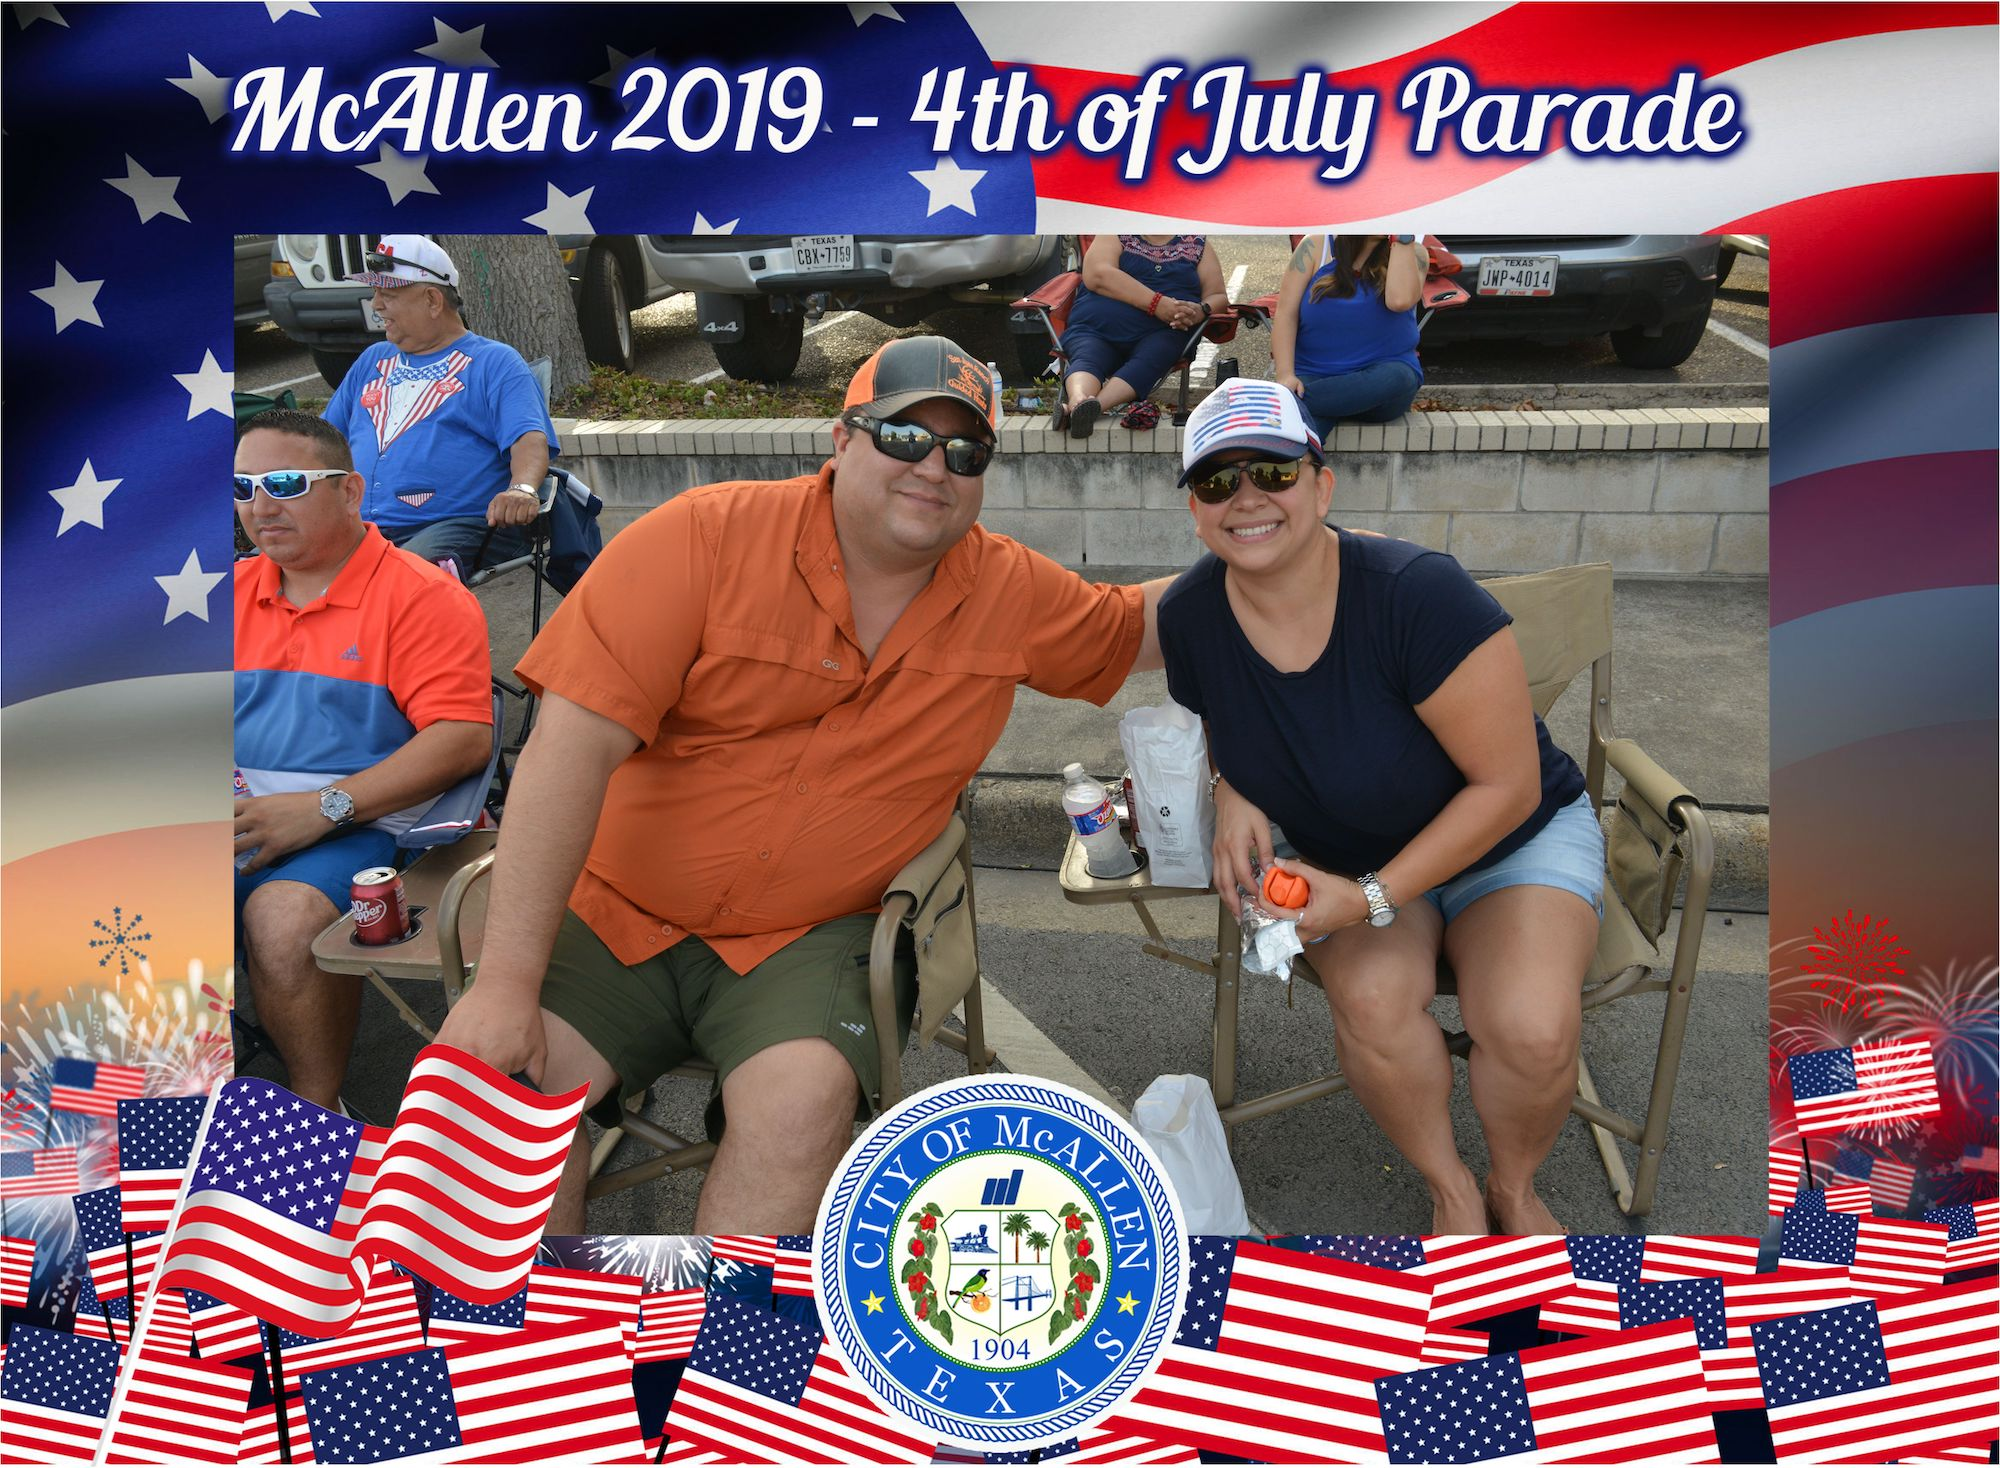 McAllen 4th of July Parade 2019 – Part 1